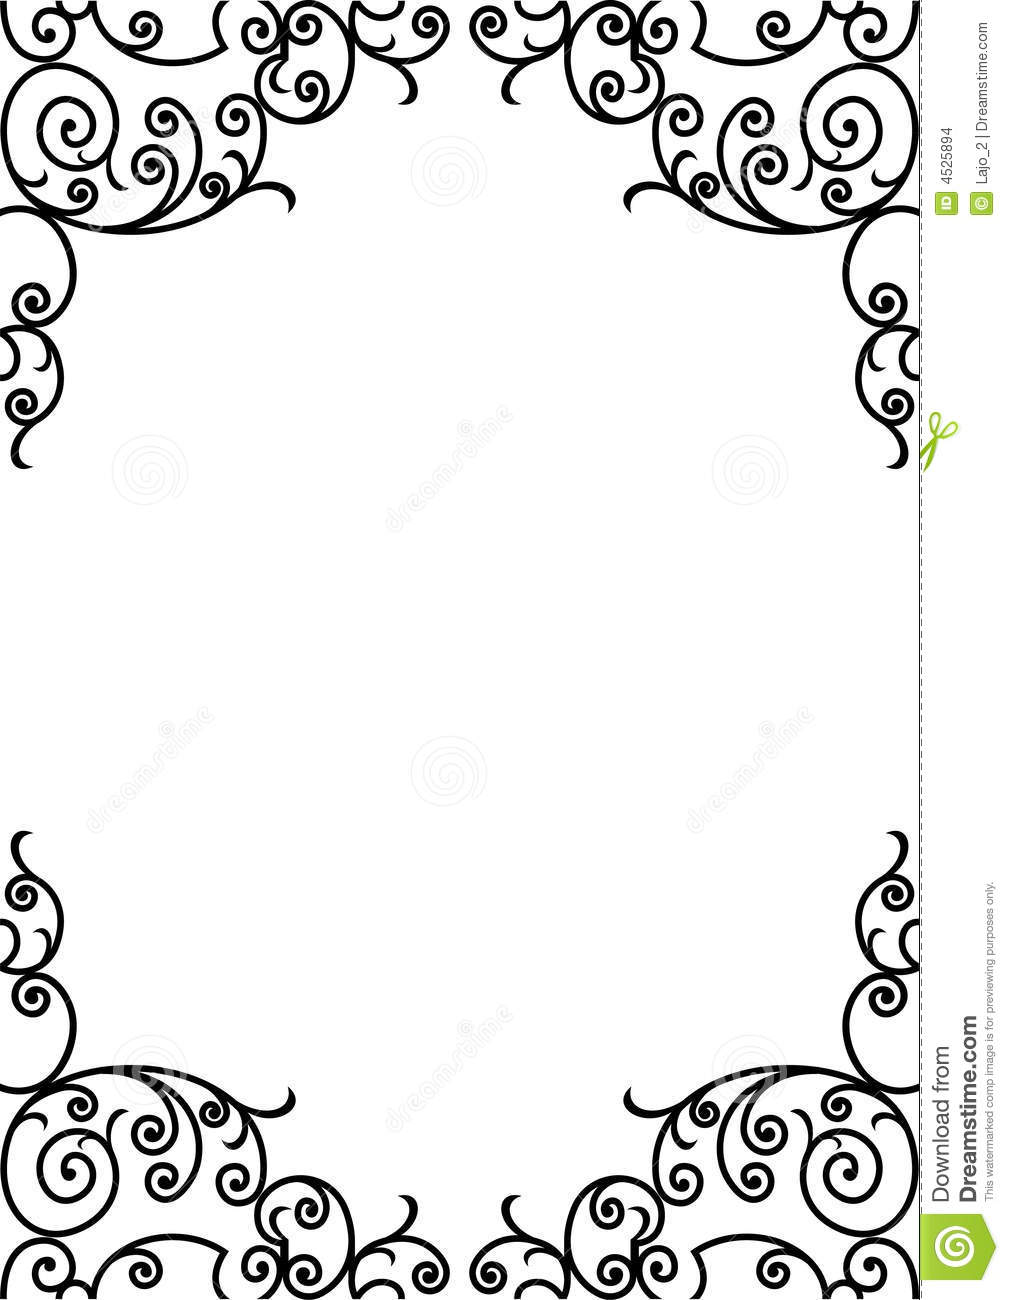 More similar stock images of ` Decorative black and white border `